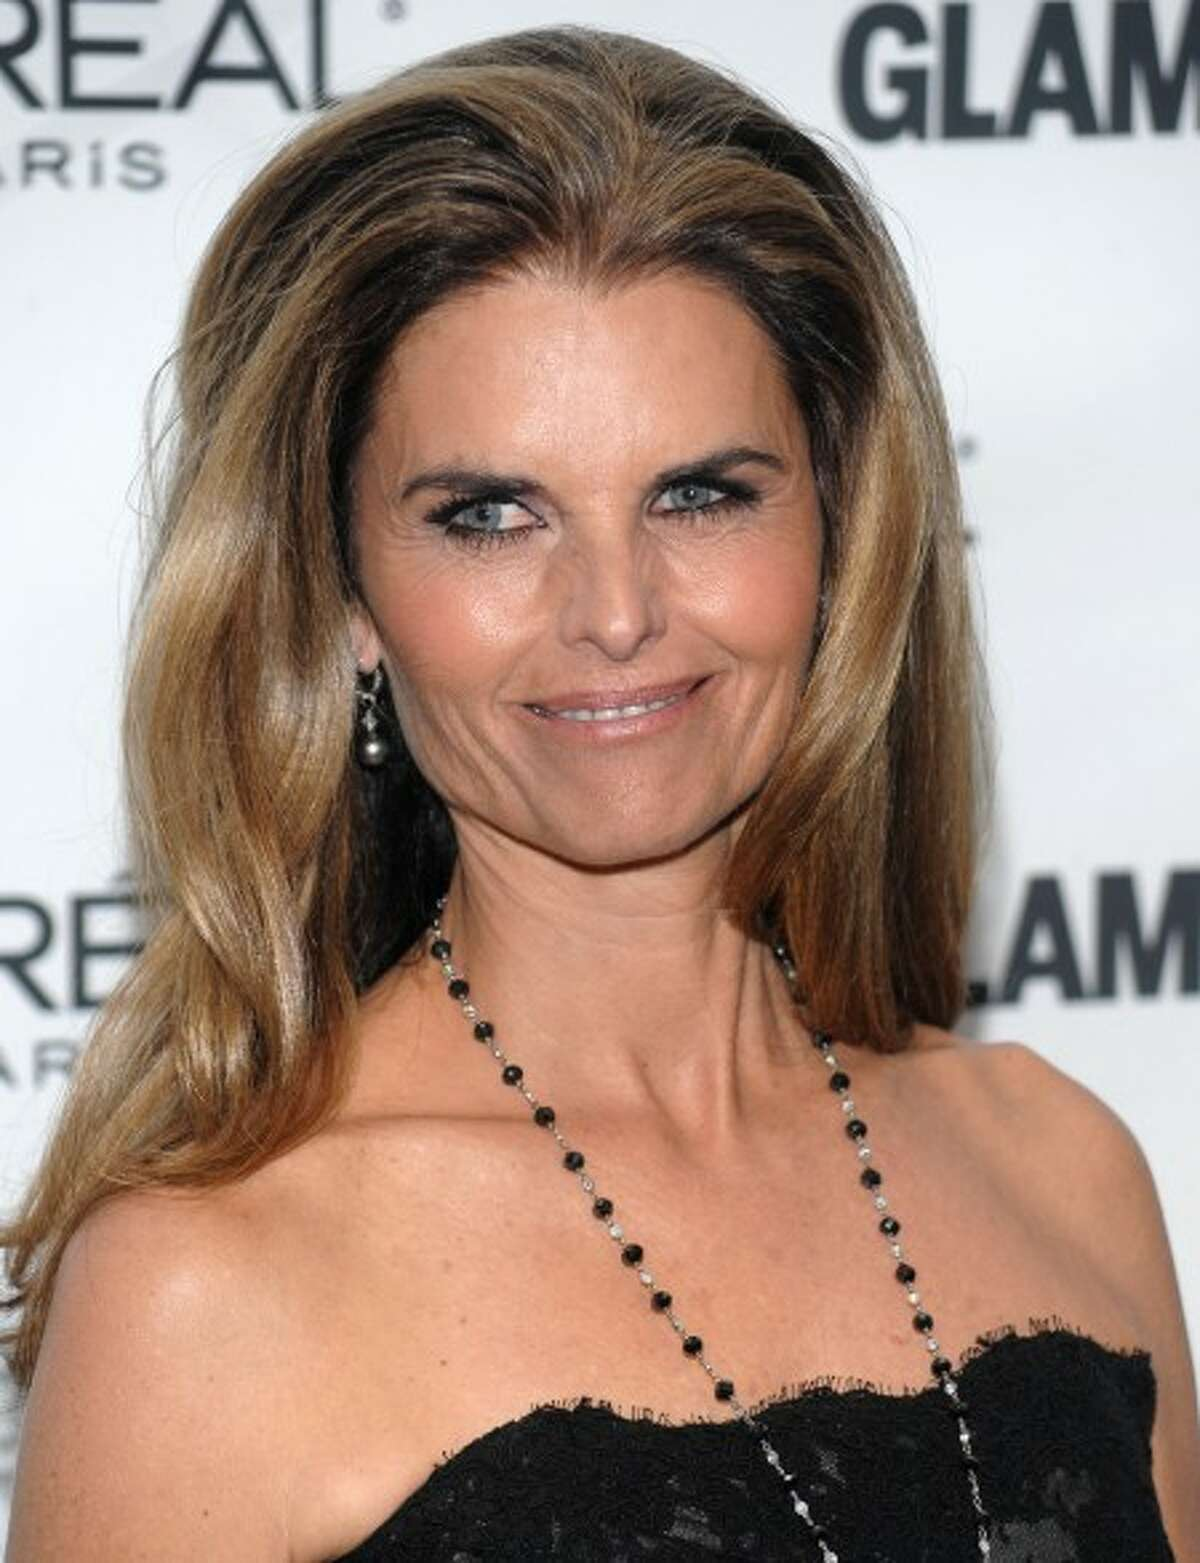 Maria Shriver attends the Glamour Magazine 2009 Women of the Year Awards at Carnegie Hall in New York. (AP Photo/Evan Agostini)